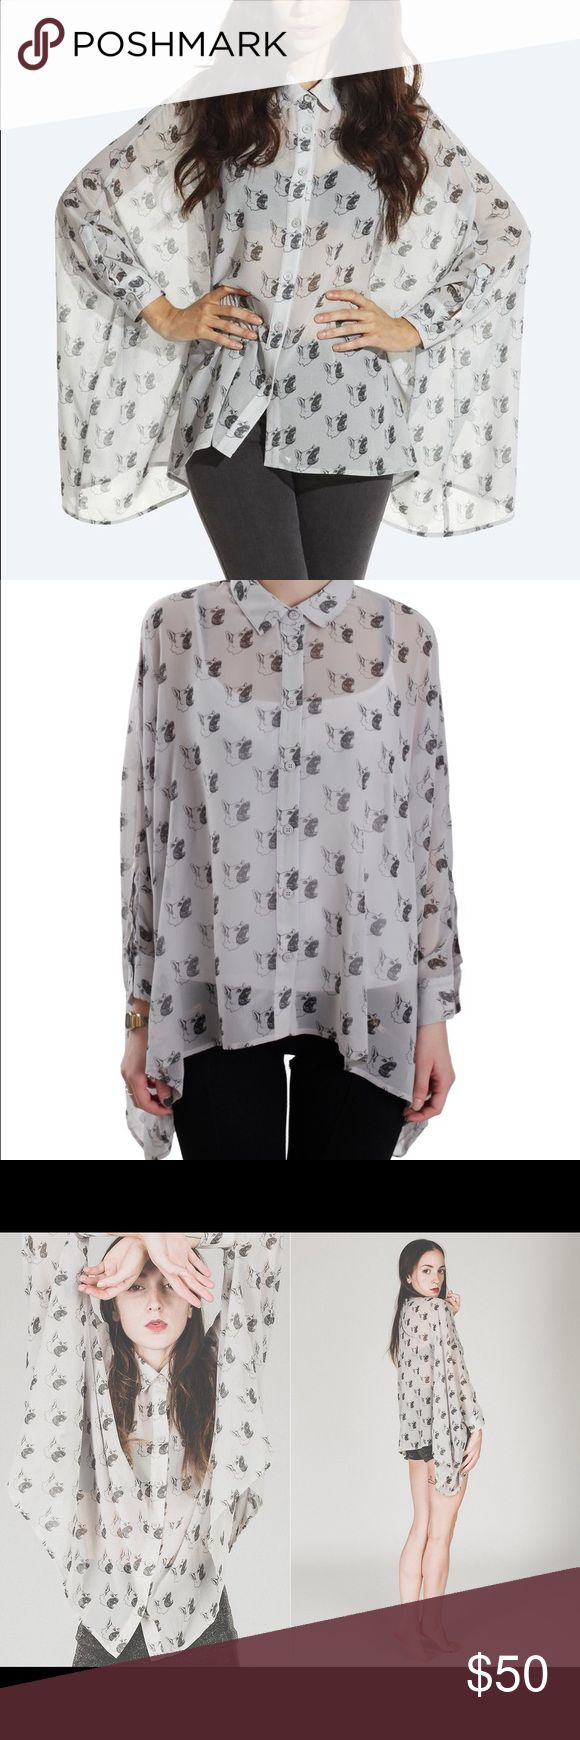 Drop dead woof woof shirt Sheer button down batwing shirt with an asymmetrical hemline and barking woowoos throughout. Petite small but can accommodate much larger sizes. NIP never even opened. drop dead Tops Button Down Shirts